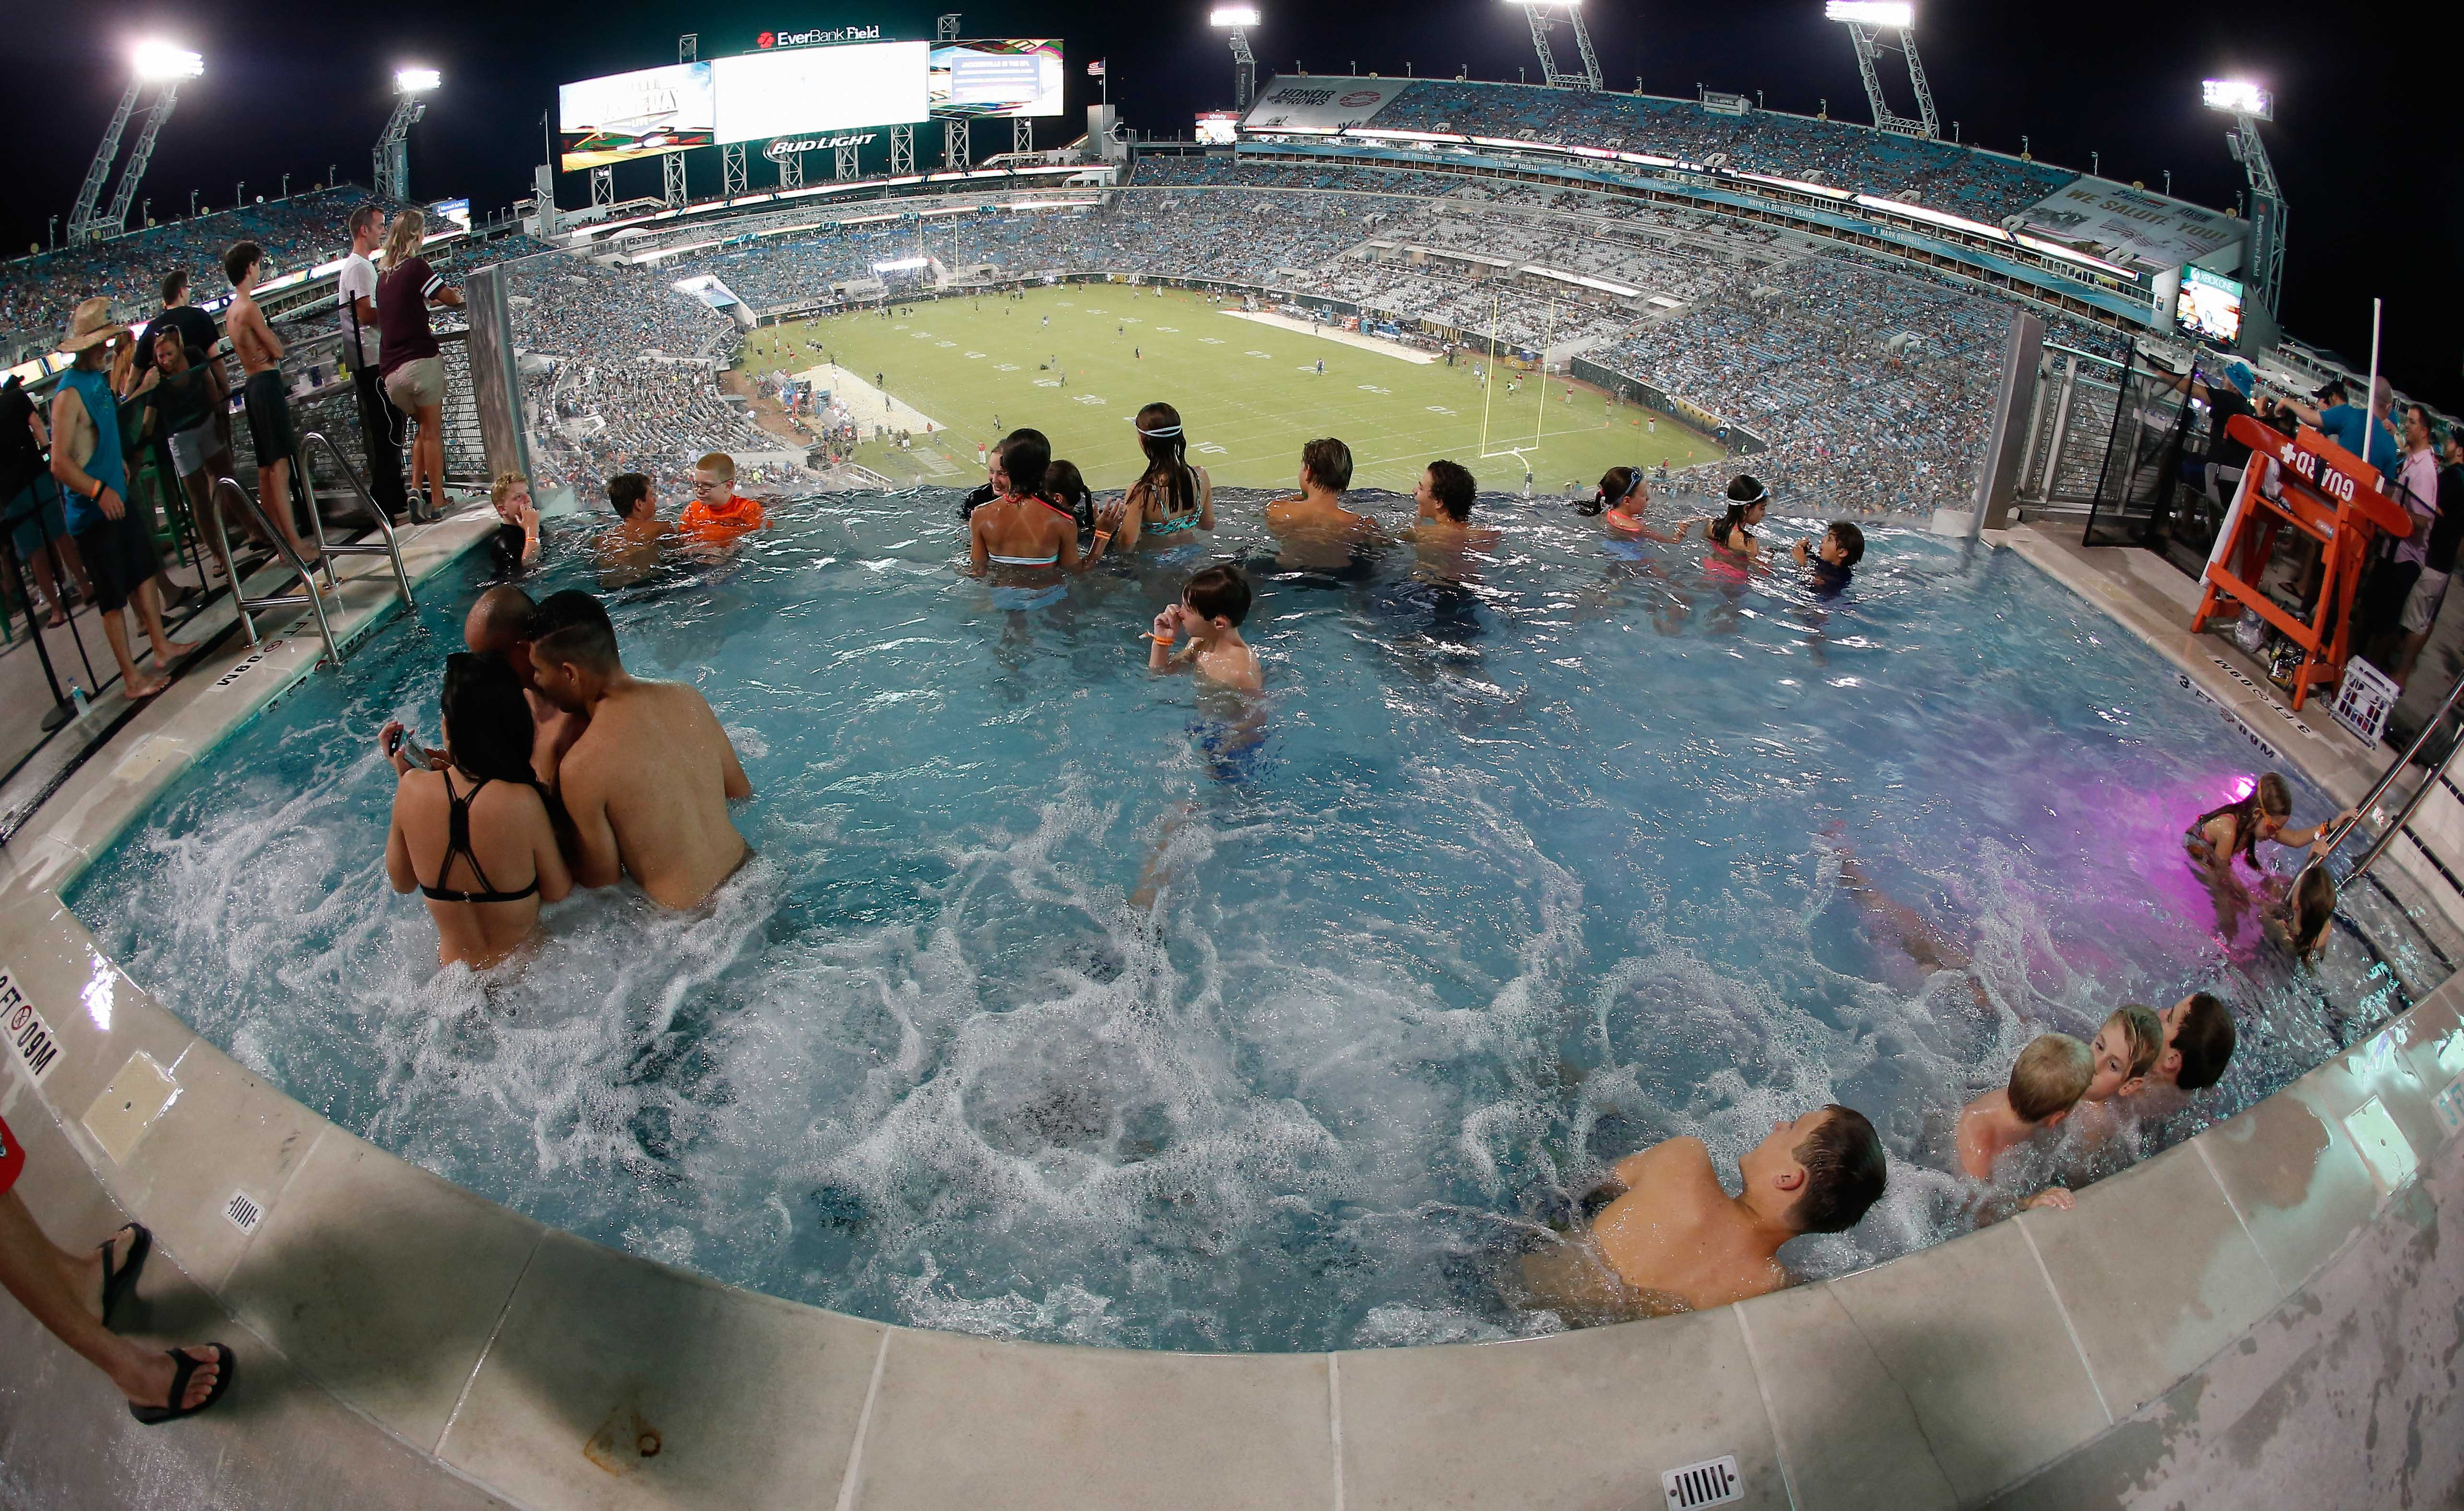 Rutgers put a pool in the football student section for Florida hot tubs